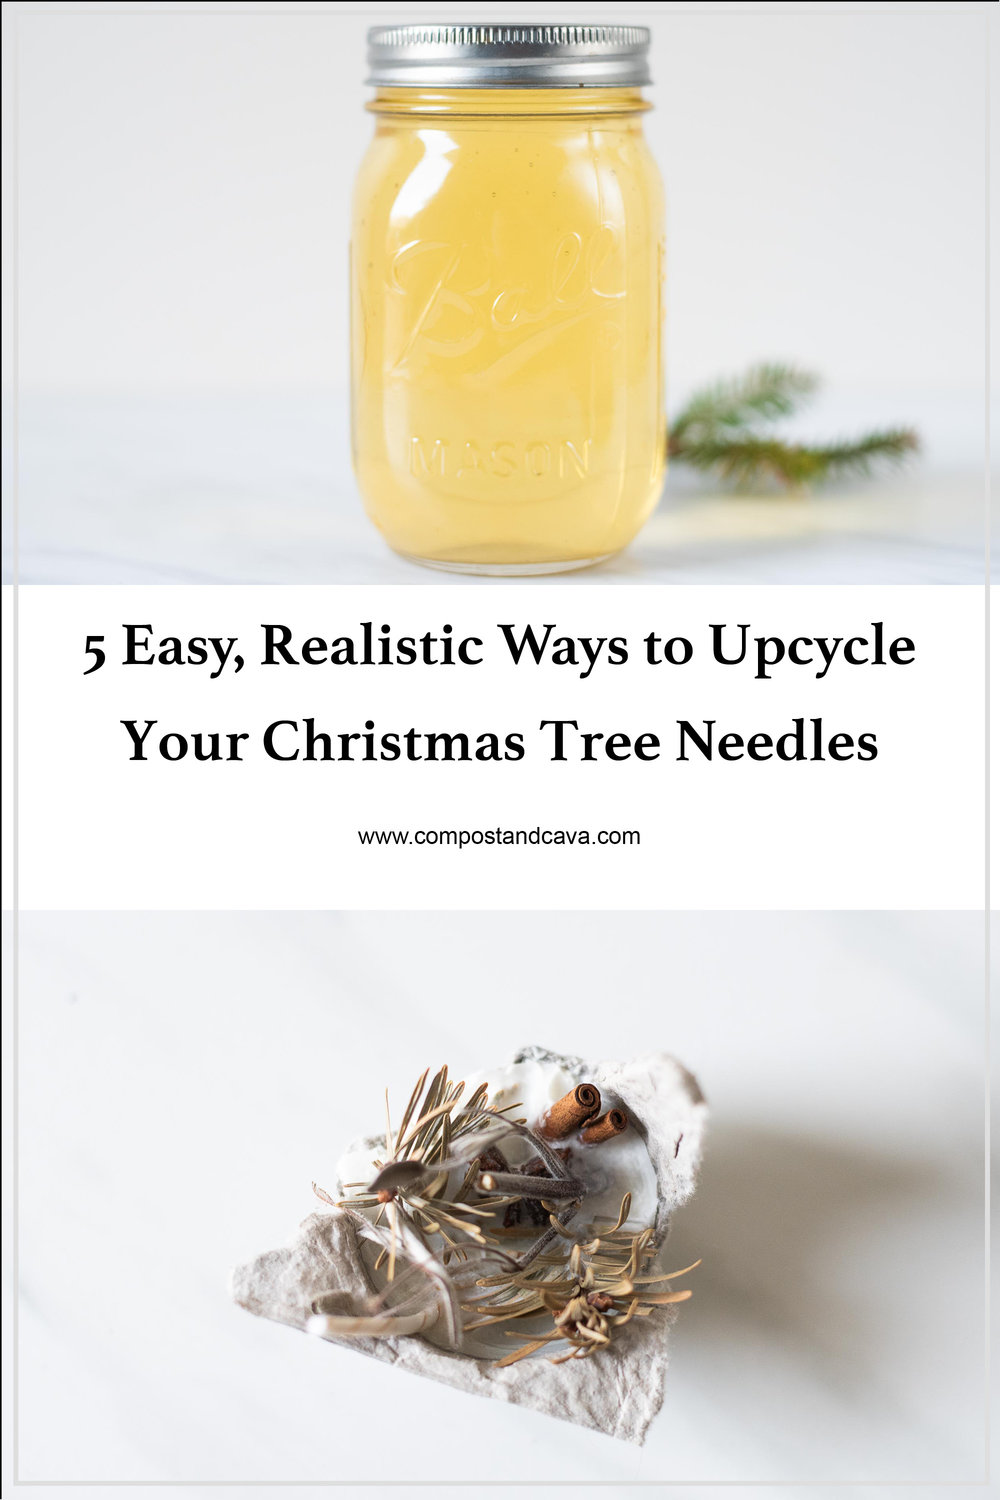 5 Easy, Realistic Ways to Upcycle Your Christmas Tree Needles